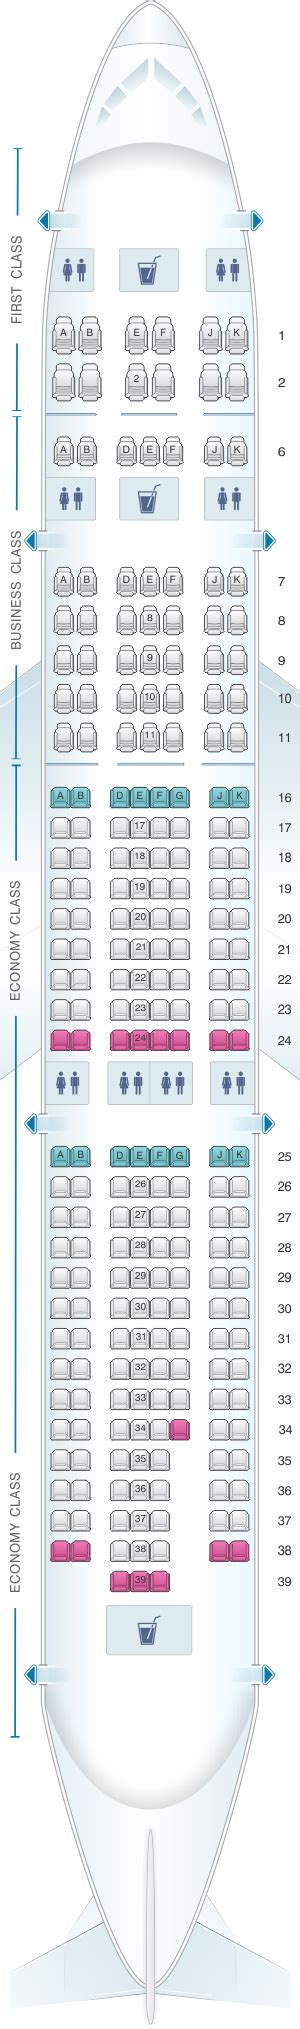 siege emirates plan de cabine emirates airbus a330 200 three class